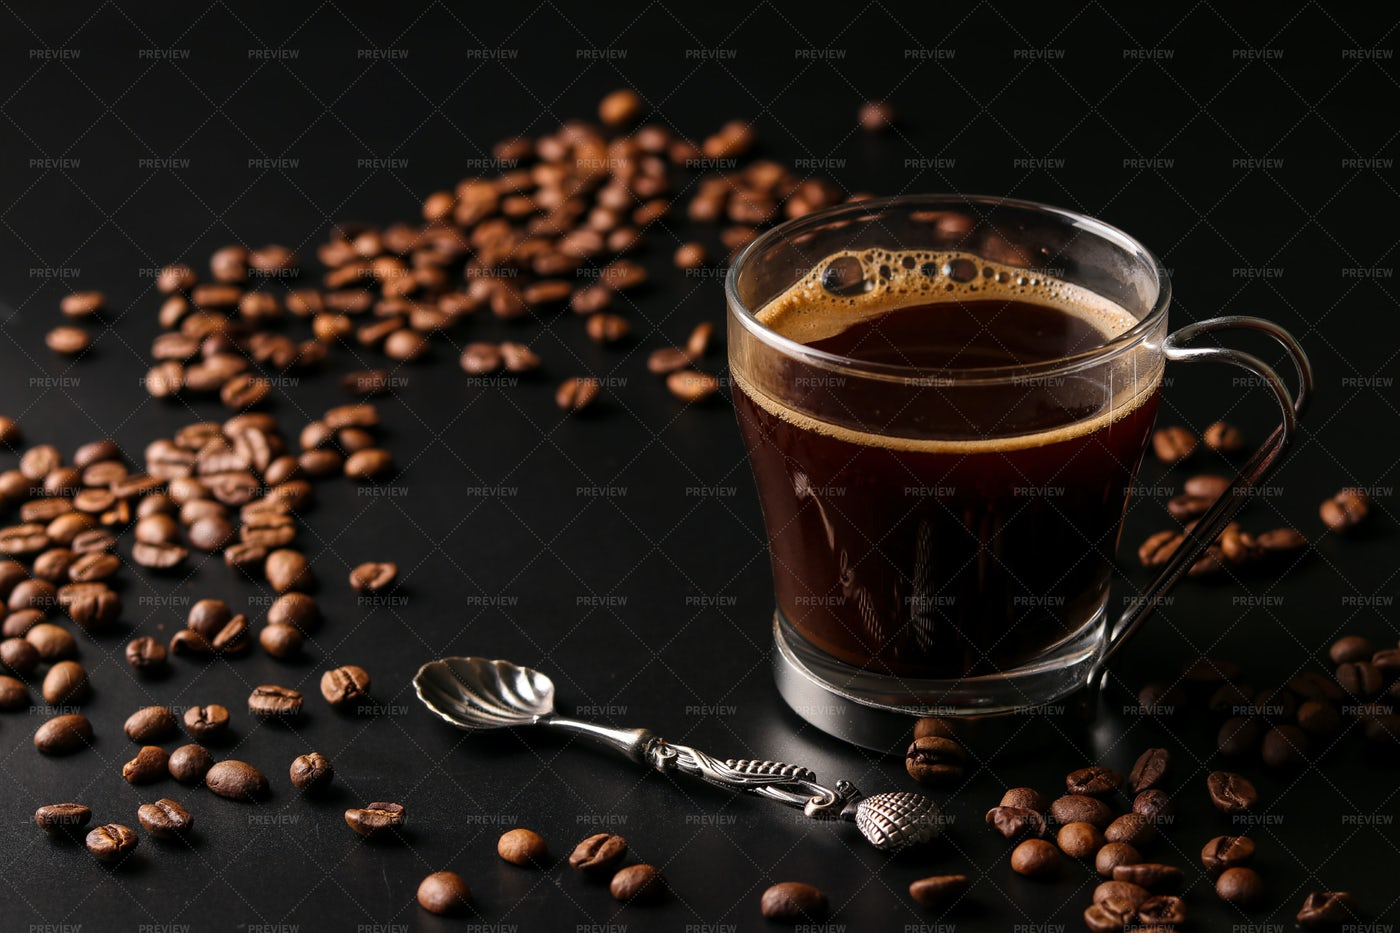 Coffee In Transparent Cup: Stock Photos